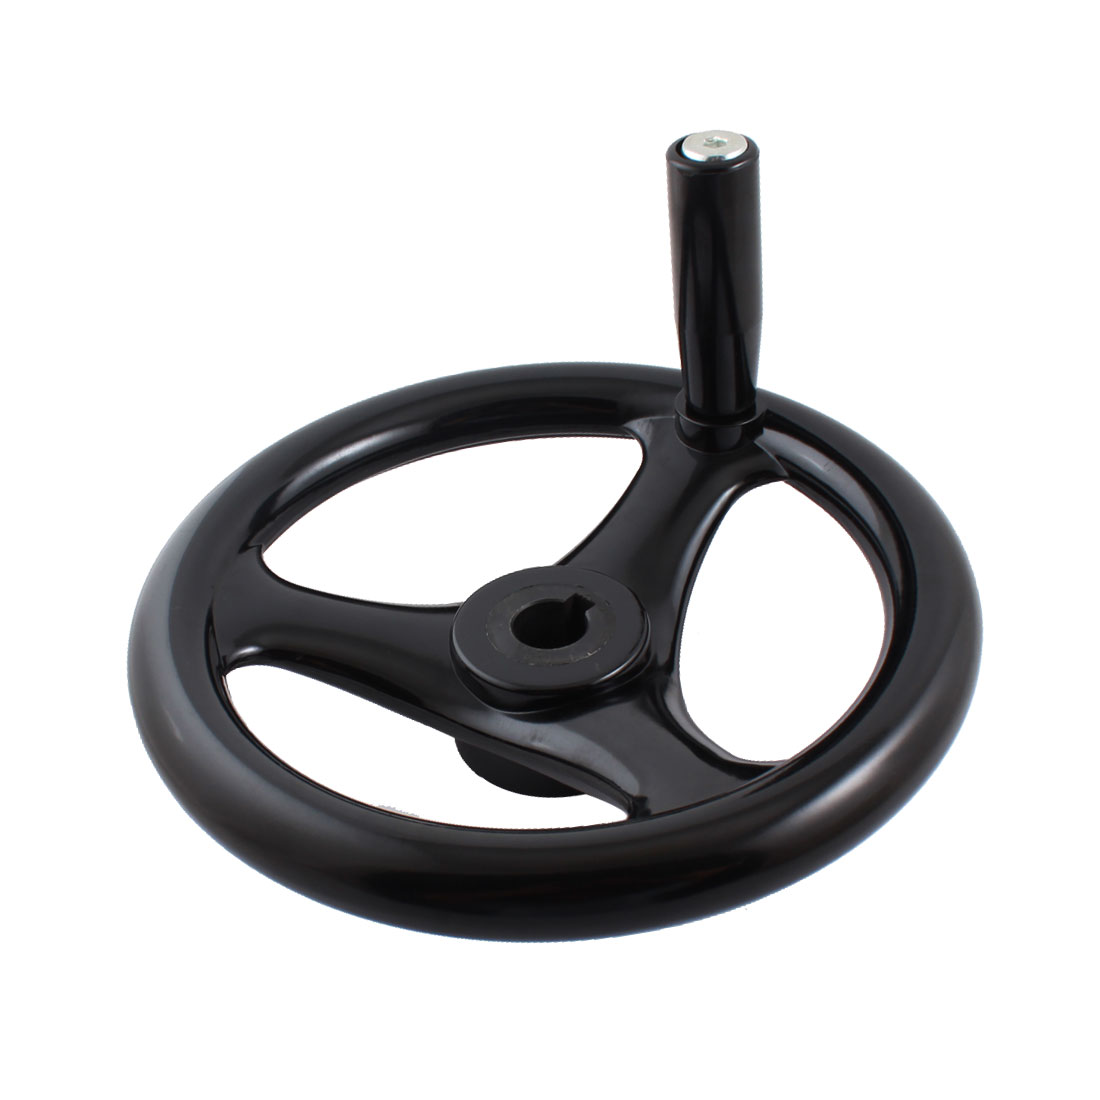 22mm x 250mm Round Black Plastic 3 Spoke Hand Wheel Handwheel w Screw On Handle for Milling Machine